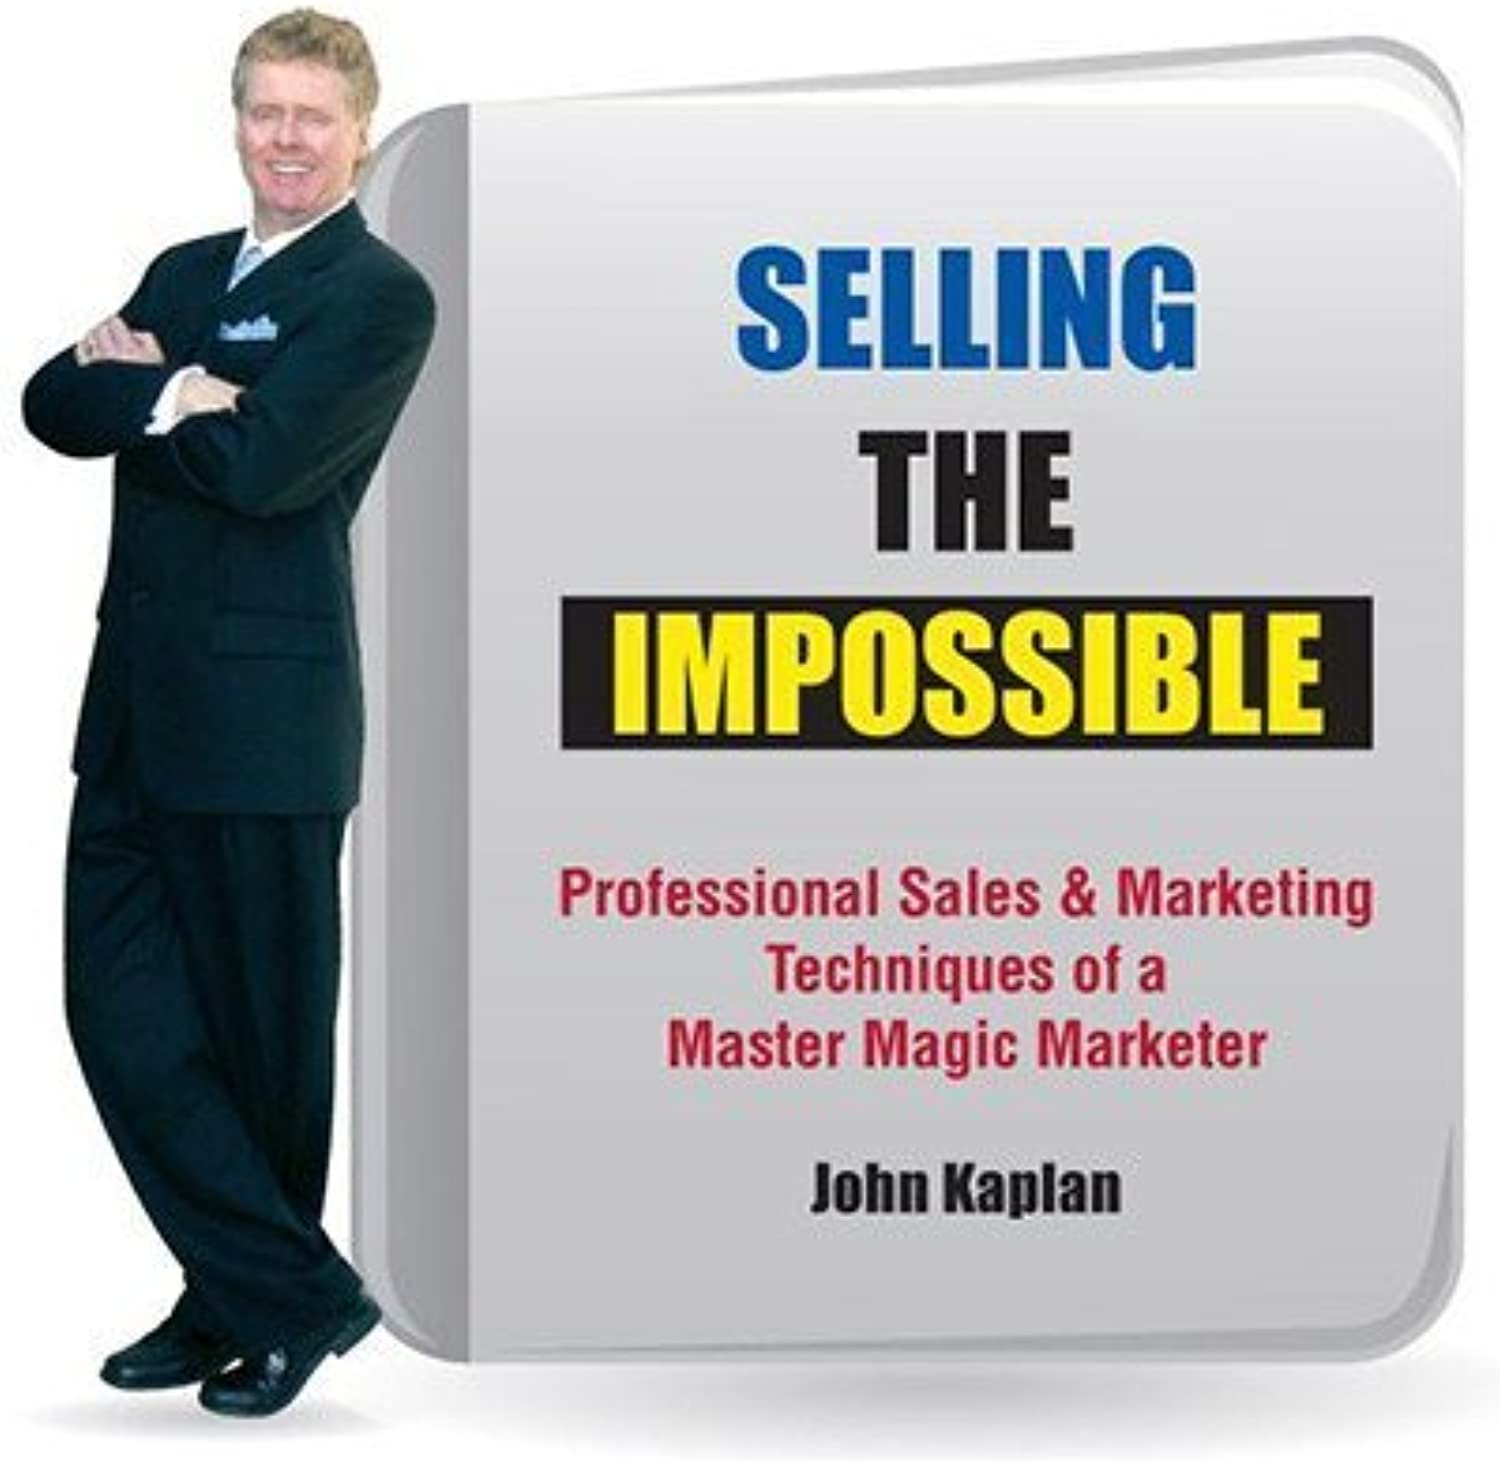 Selling the Impossible by John Kaplan  Book